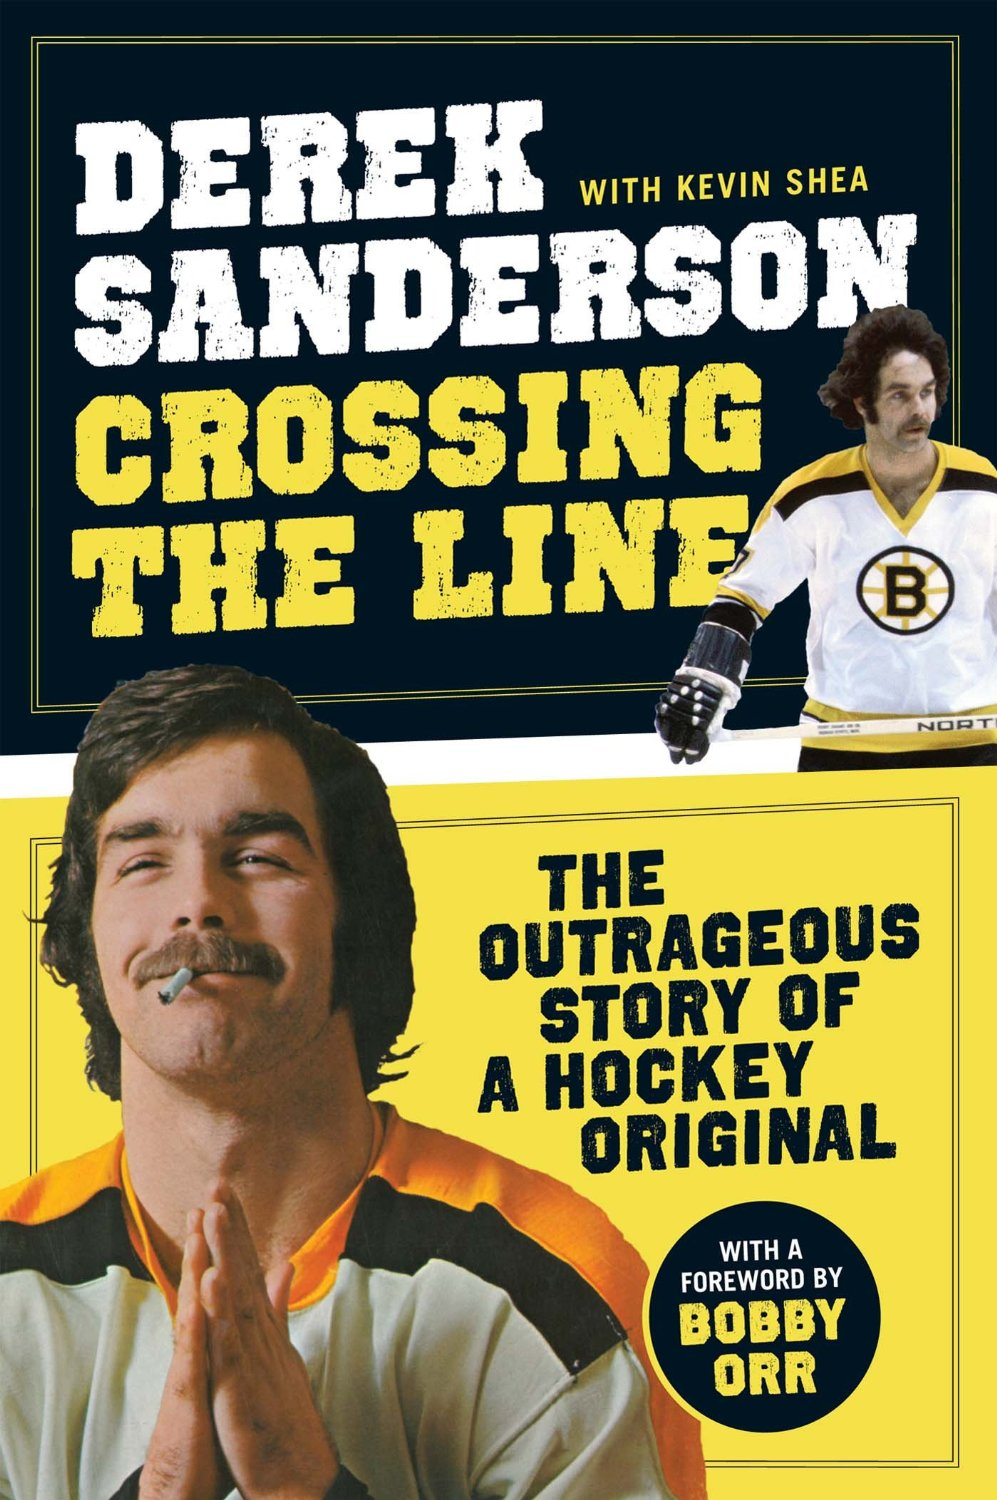 Derek Sanderson's new memoir Crossing the Line: The Outrageous Story of a Hockey Original